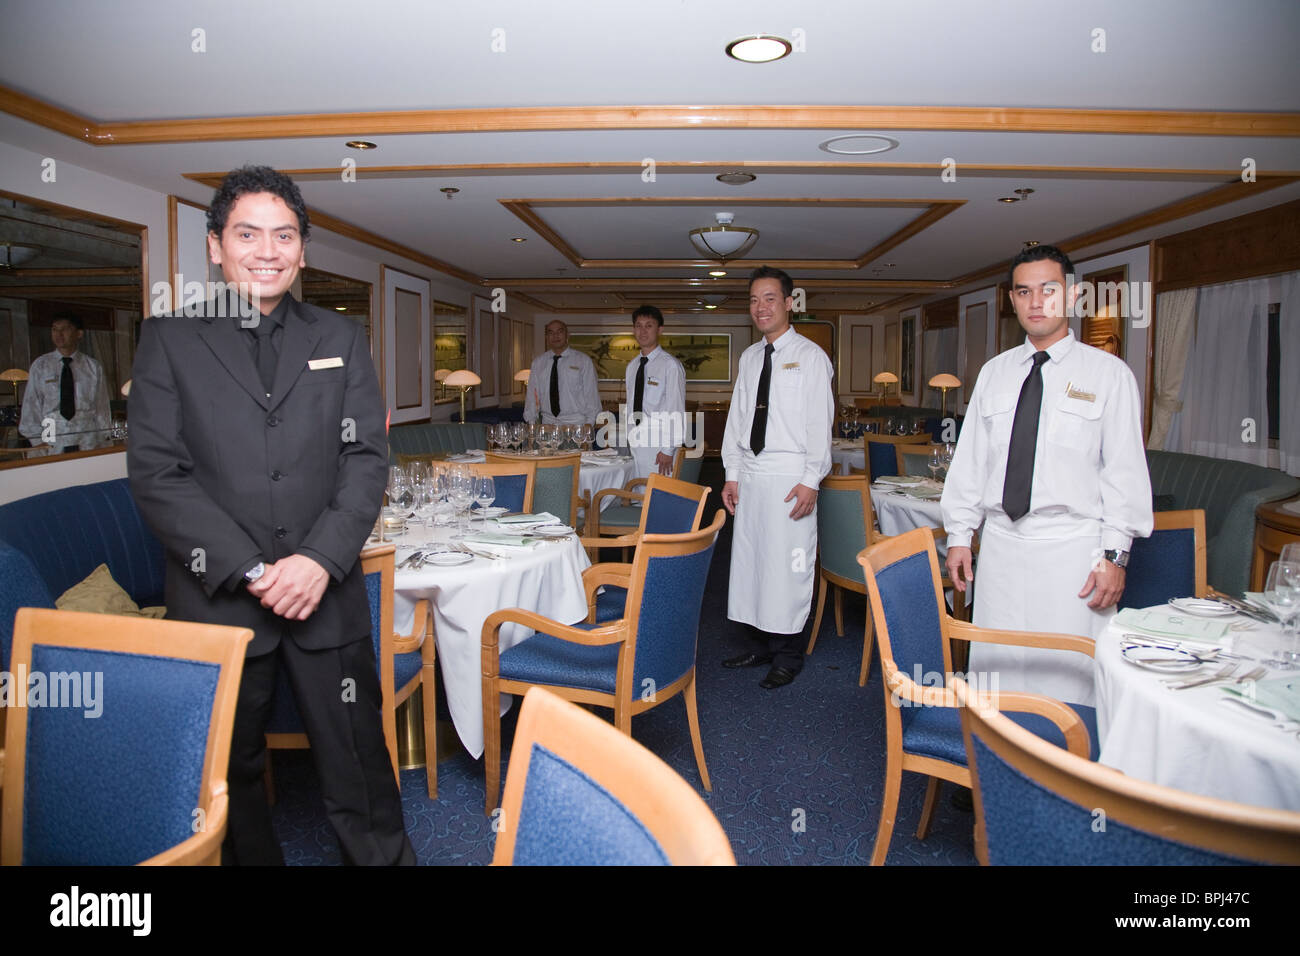 Maitre d 39 hotel clinton perkins dining room staff for What is a maitre d